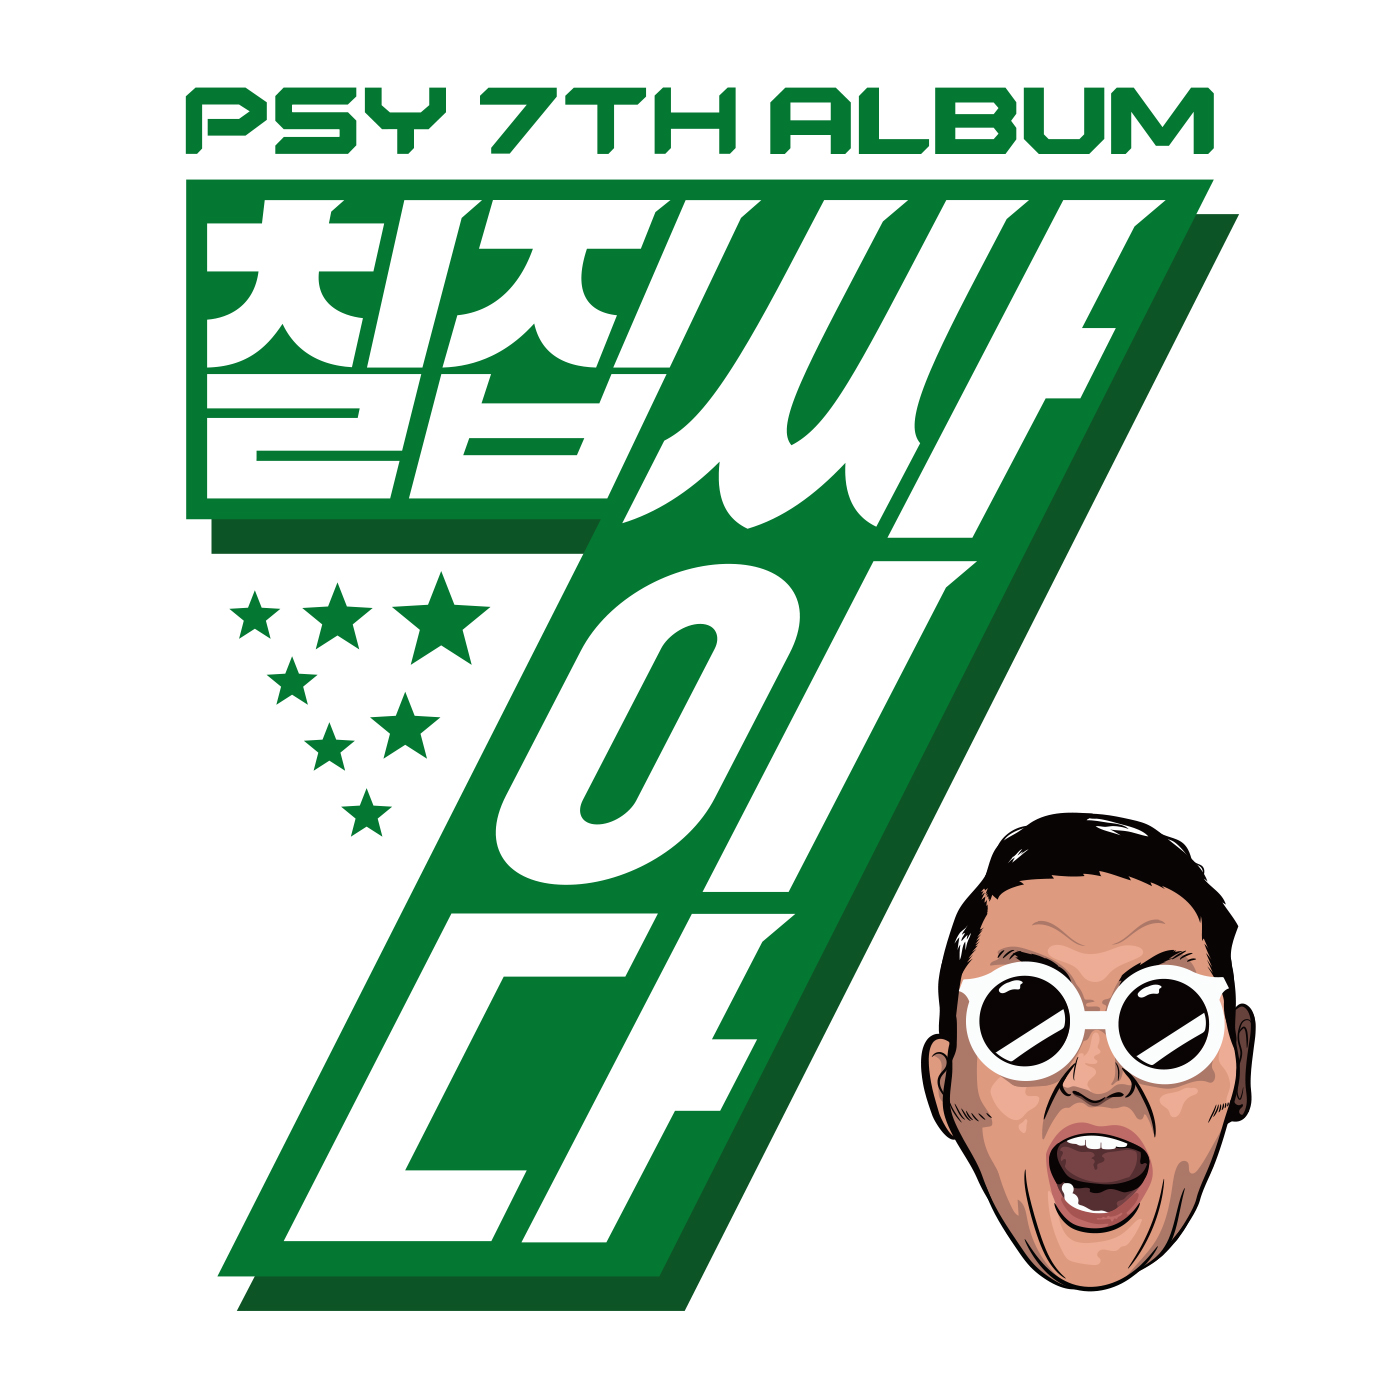 Download [Album] PSY – PSY The 7th Album (MP3 + iTunes